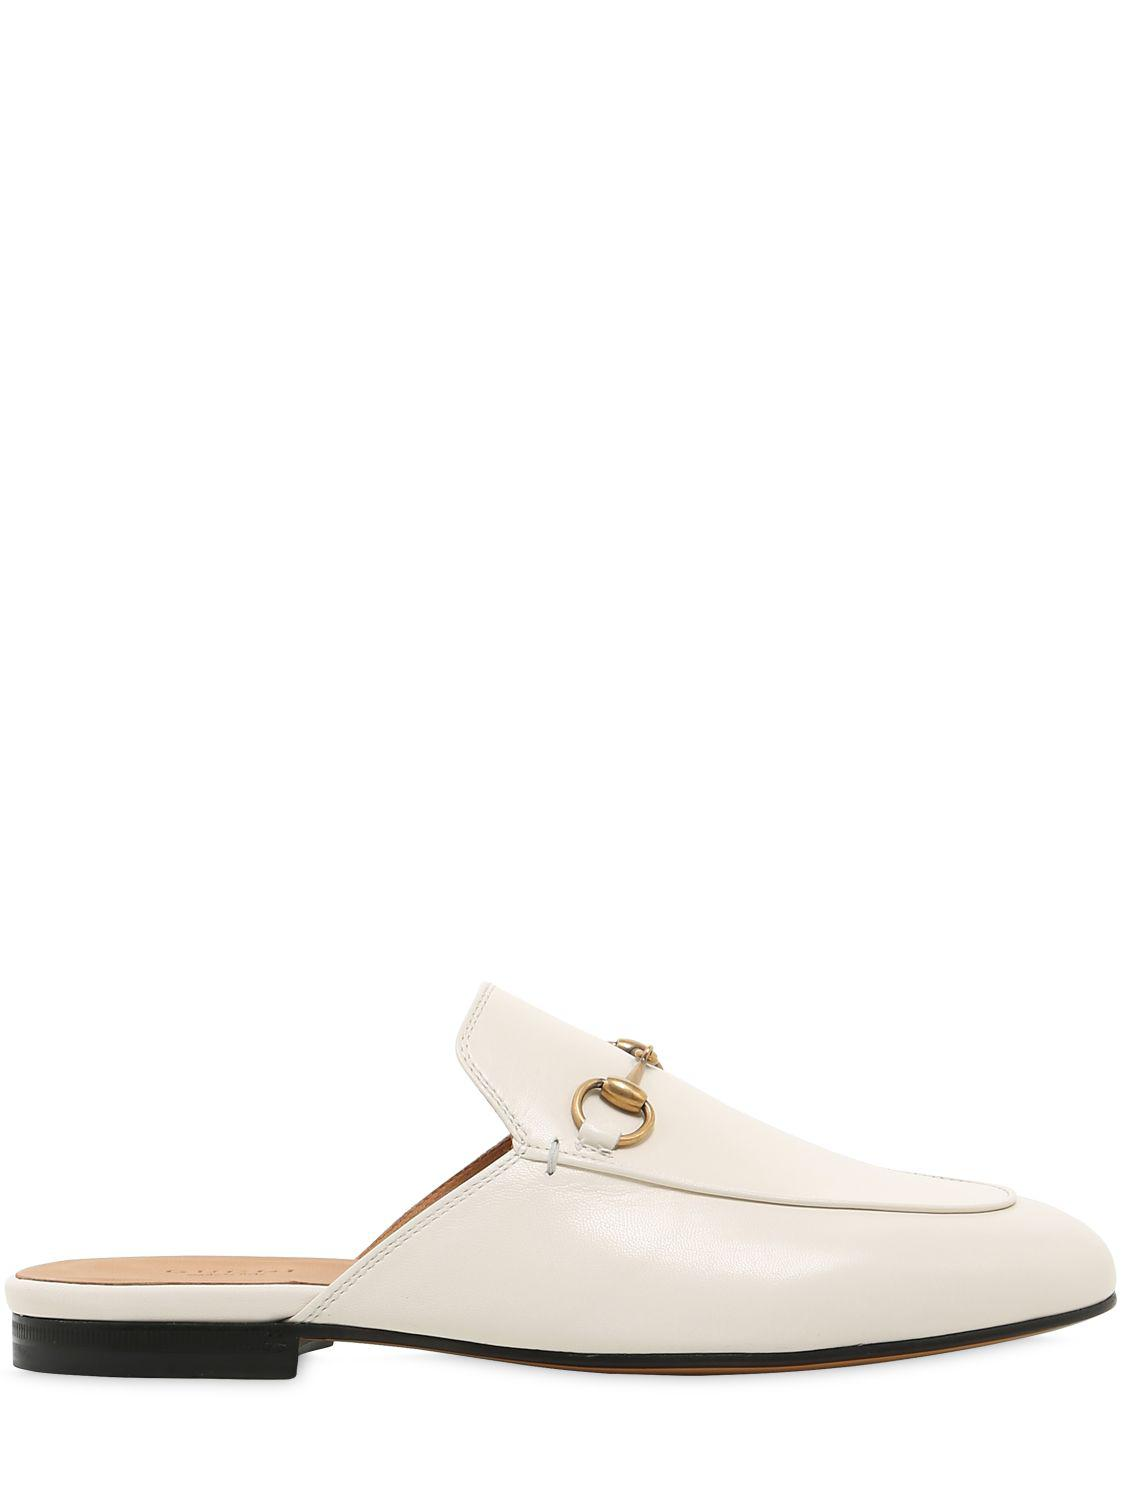 dbf5385c2f5 Lyst - Gucci 10mm Princetown Horsebit Leather Mules in White